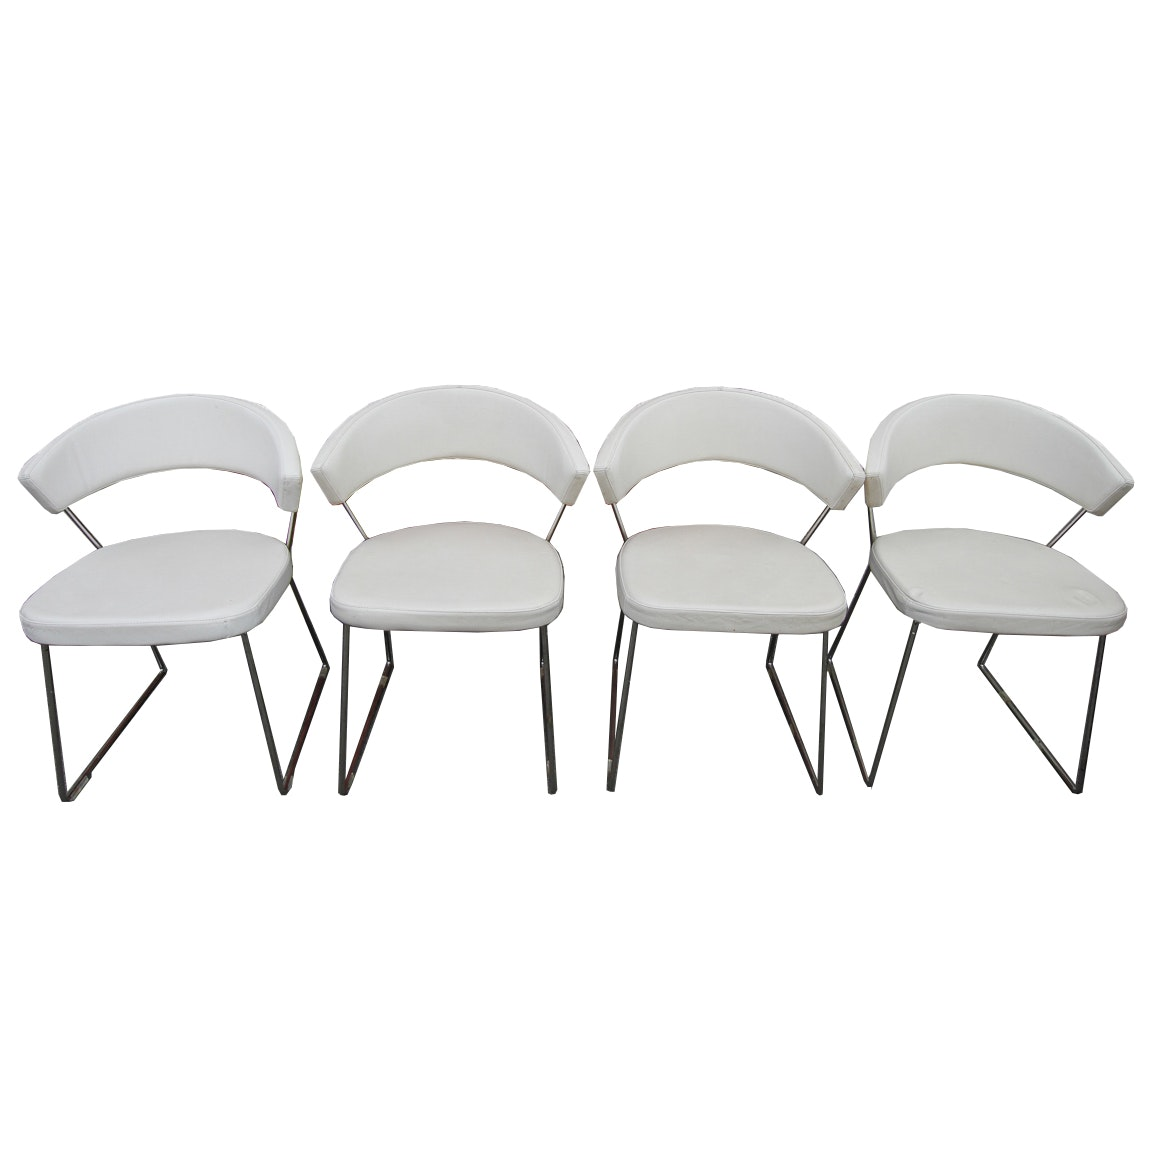 Modern Dining Chairs by Calligaris